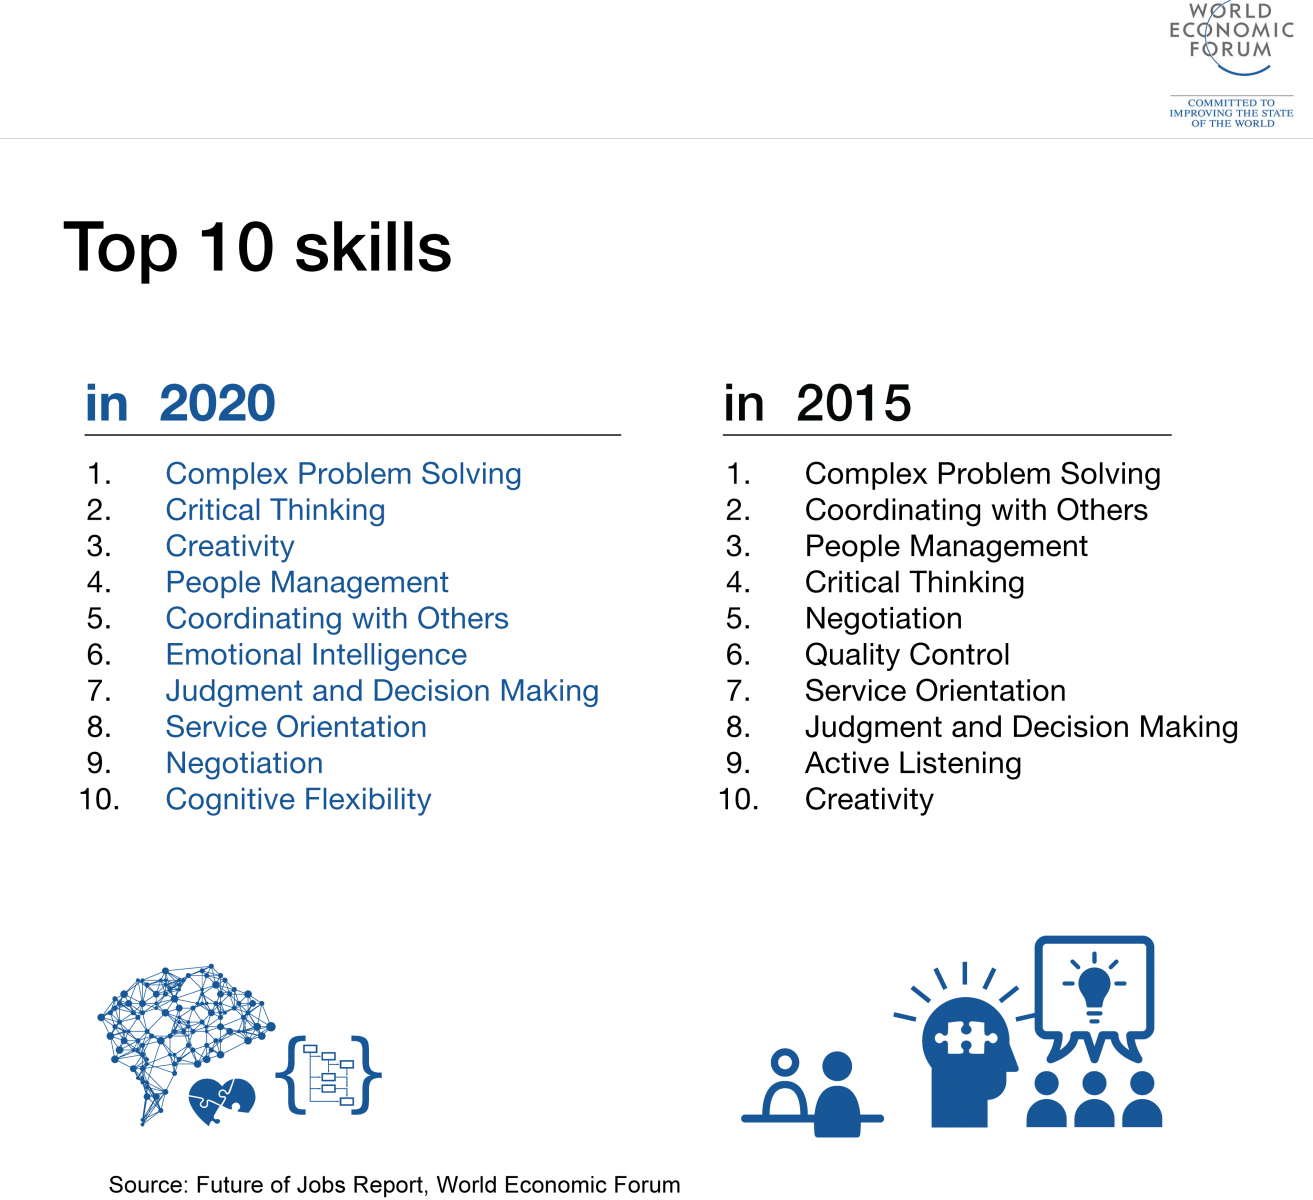 skills for the fourth industrial revolution you can see that whilst skills such a negotiation and people management are still valued they are starting to drop in importance and other skills such